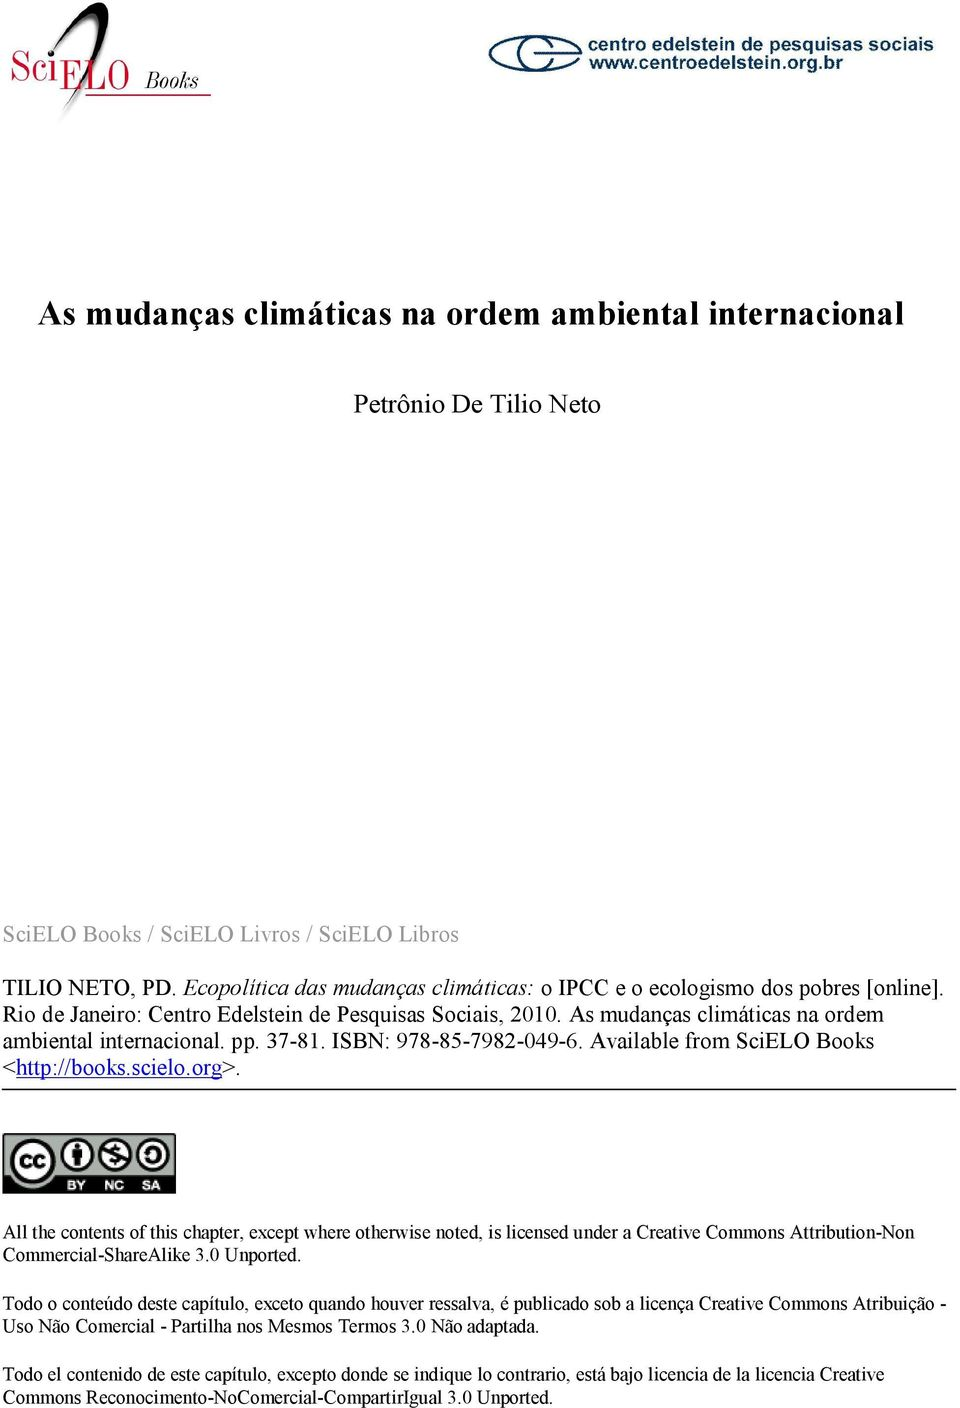 pp. 37-81. ISBN: 978-85-7982-049-6. Available from SciELO Books <http://books.scielo.org>.